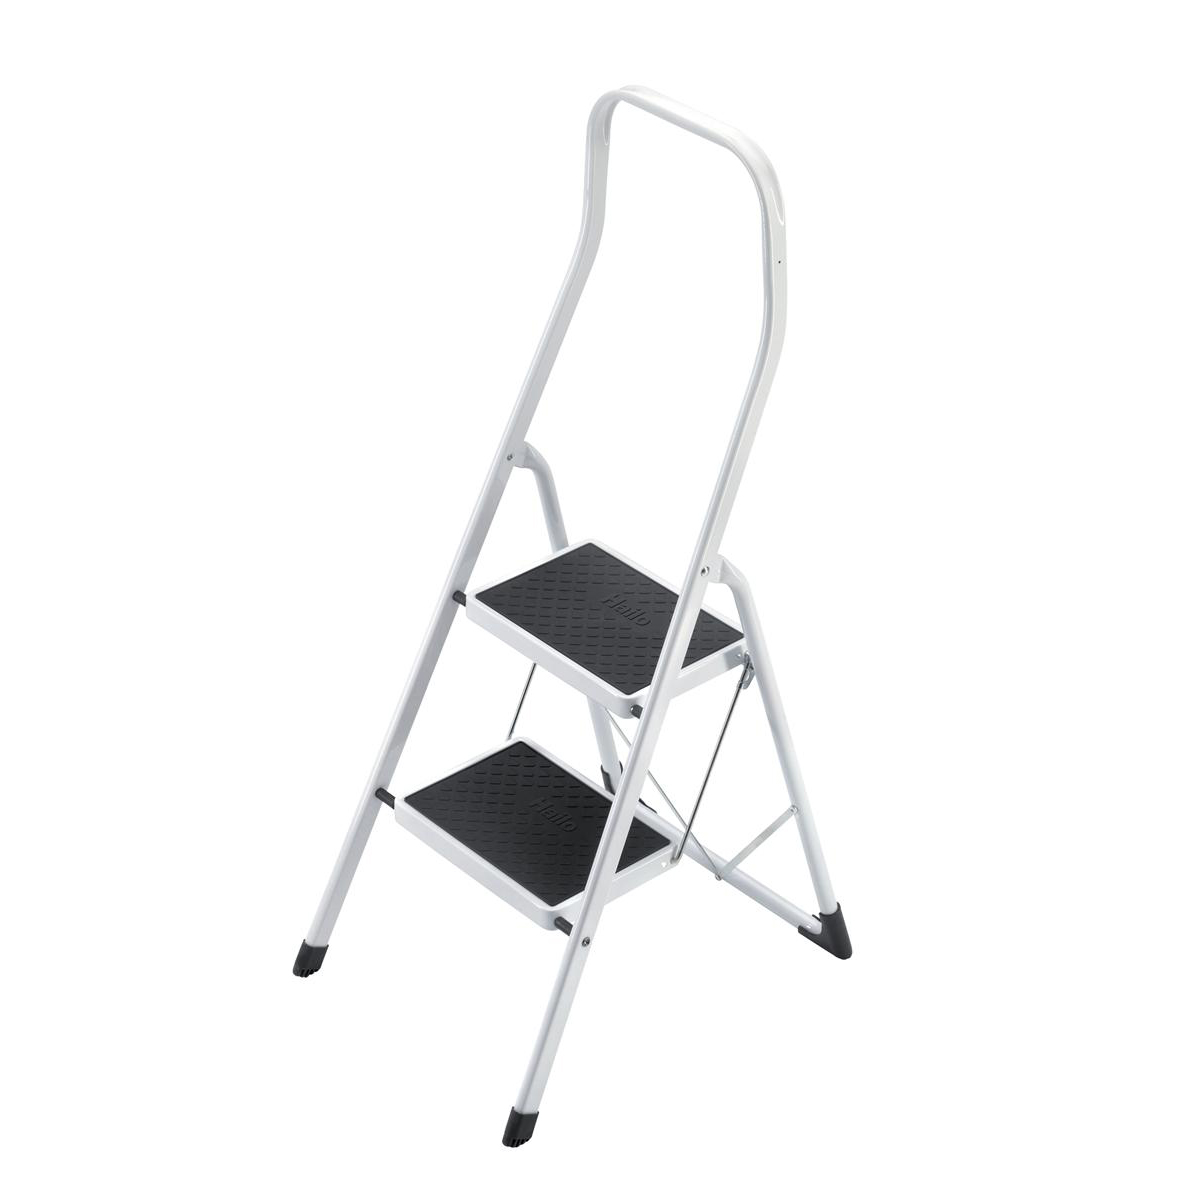 Step stool 5 Star Facilities Safety Steps Folding Safety Rail H0.5m 2 Treads Capacity 150kg H2.26m 4.9kg